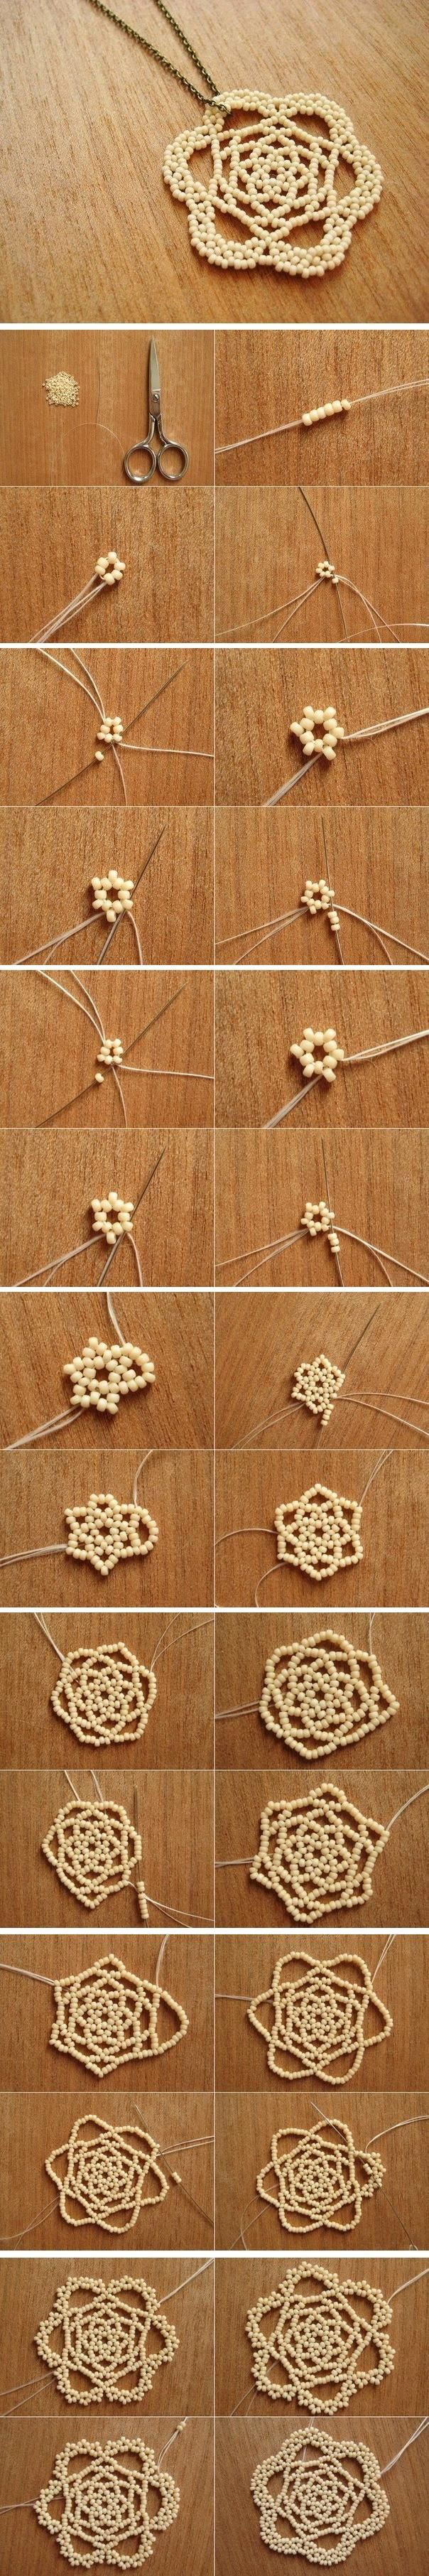 DIY Bead Necklace Pictures, Photos, and Images for Facebook, Tumblr, Pinterest, and Twitter